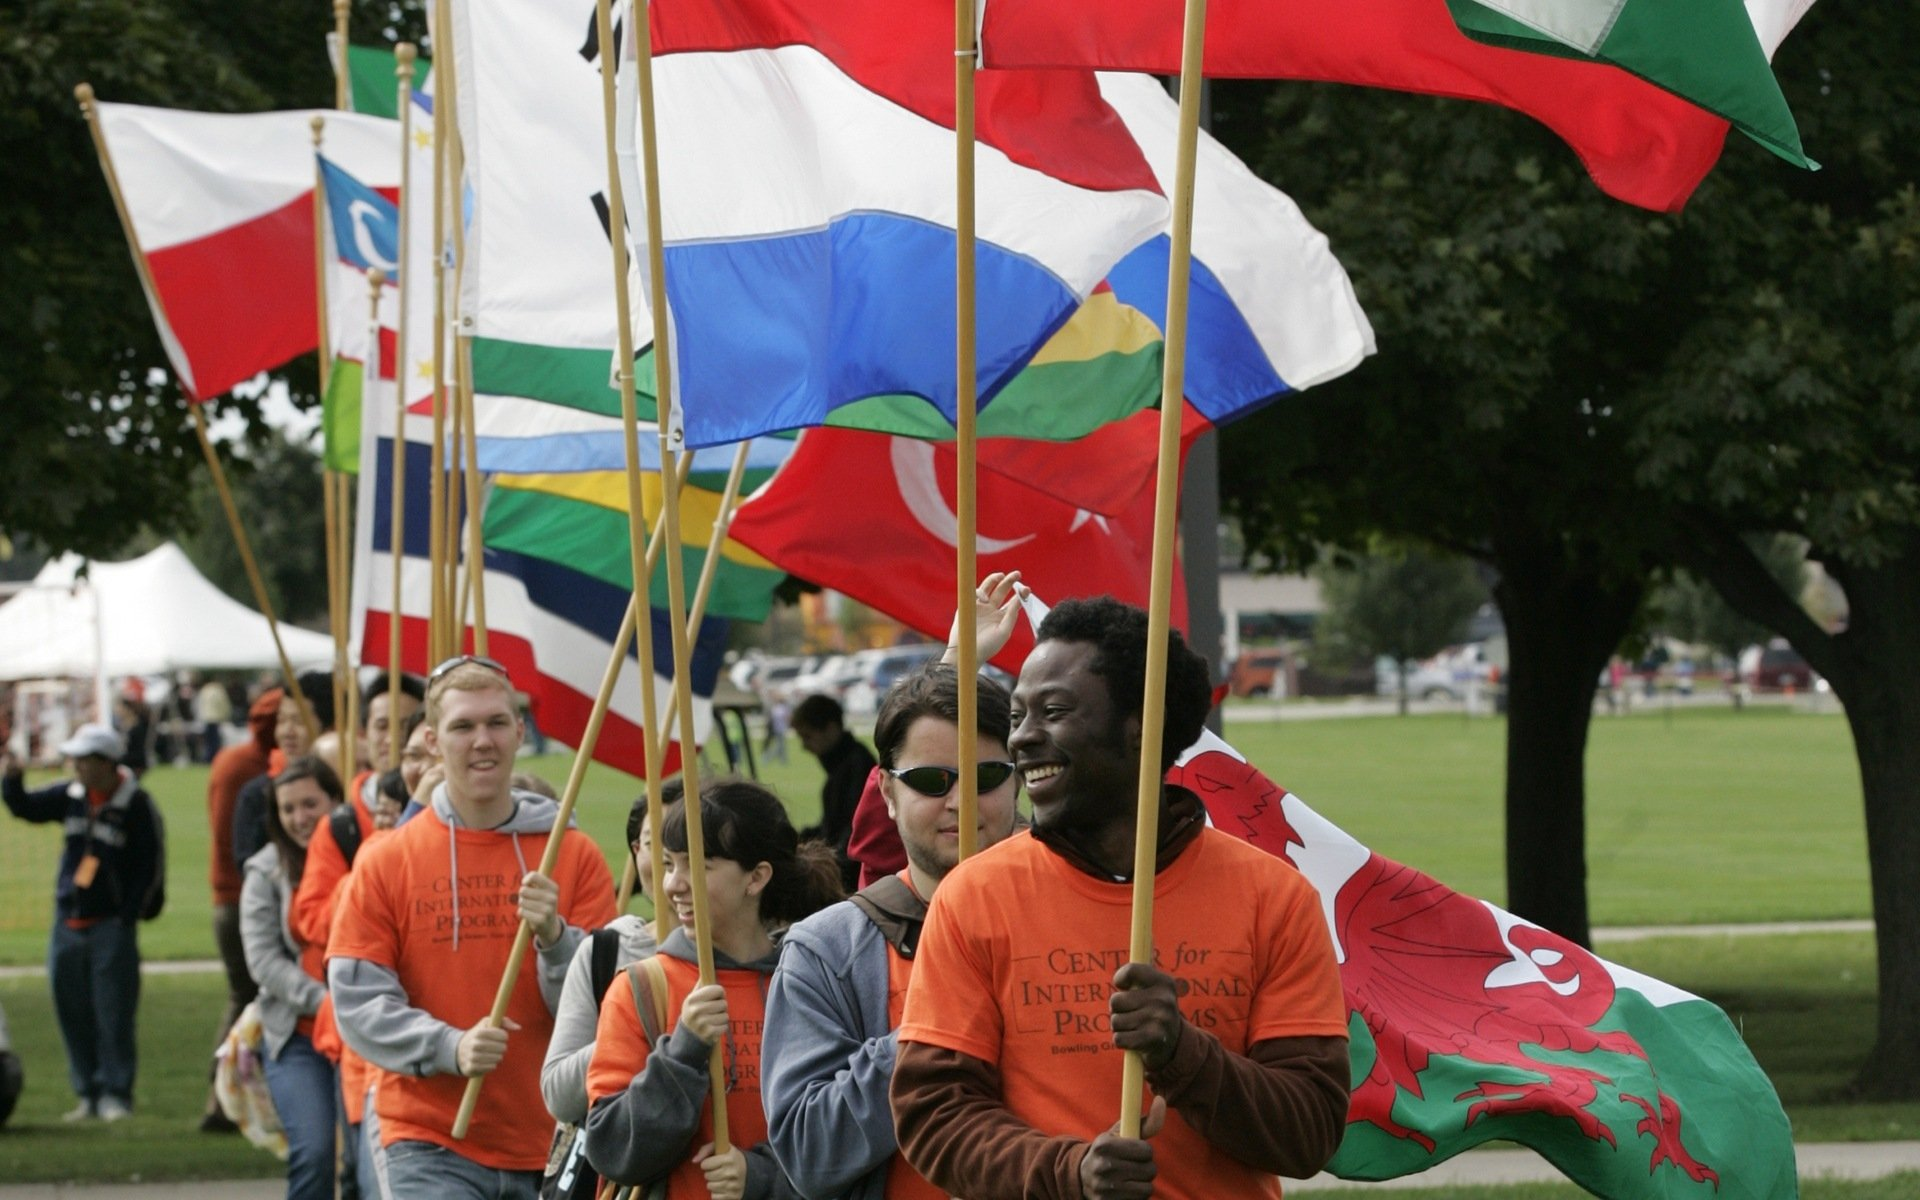 students carrying flags